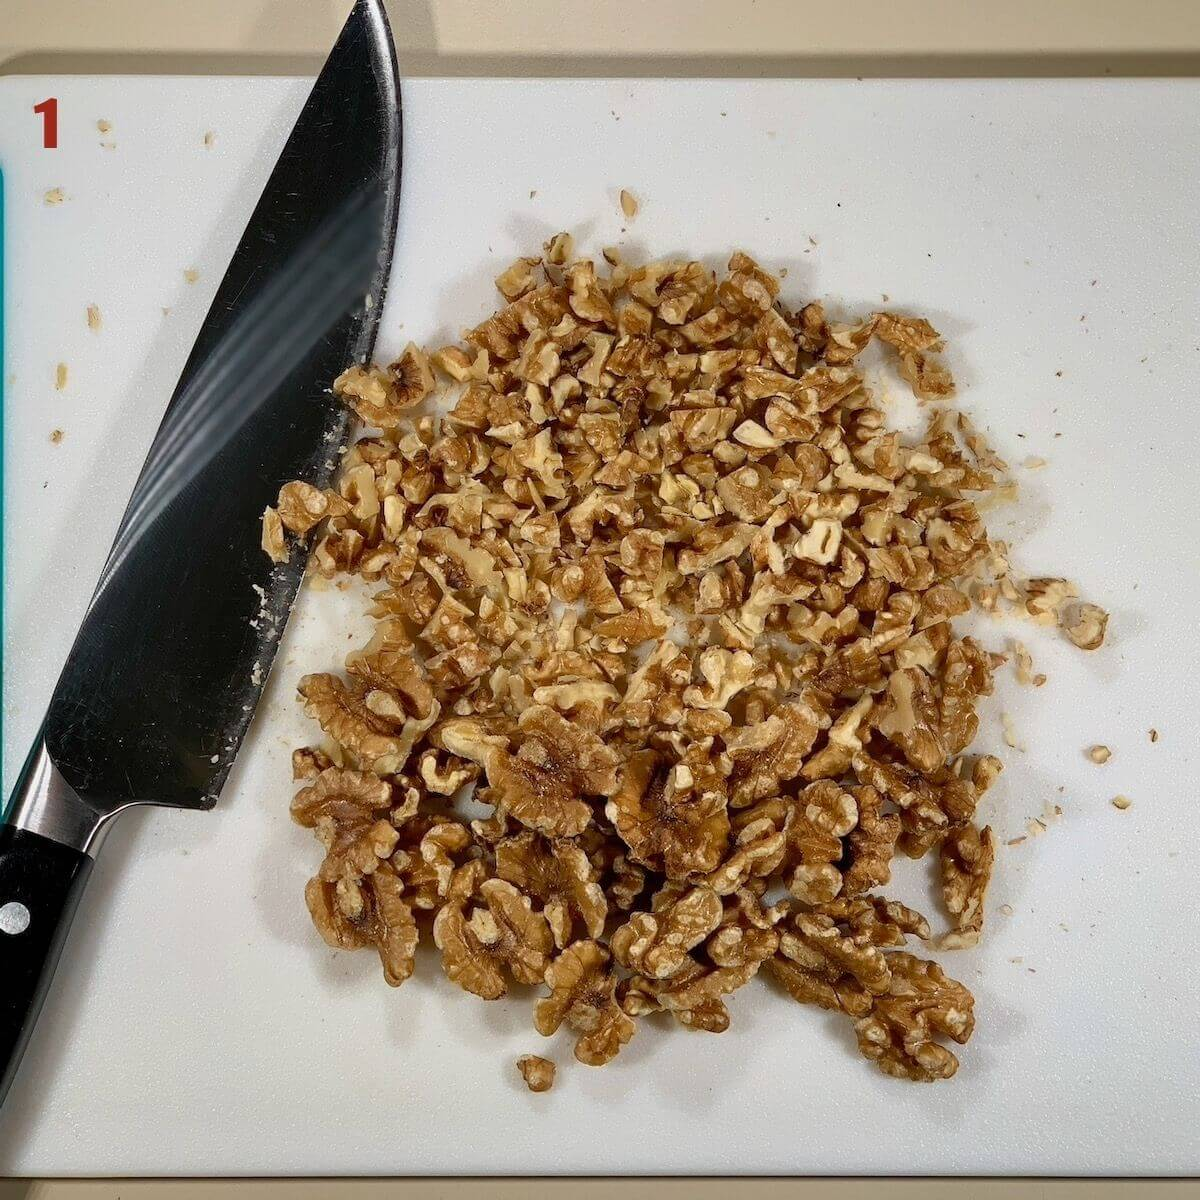 Chopped walnuts on a cutting board with knife.